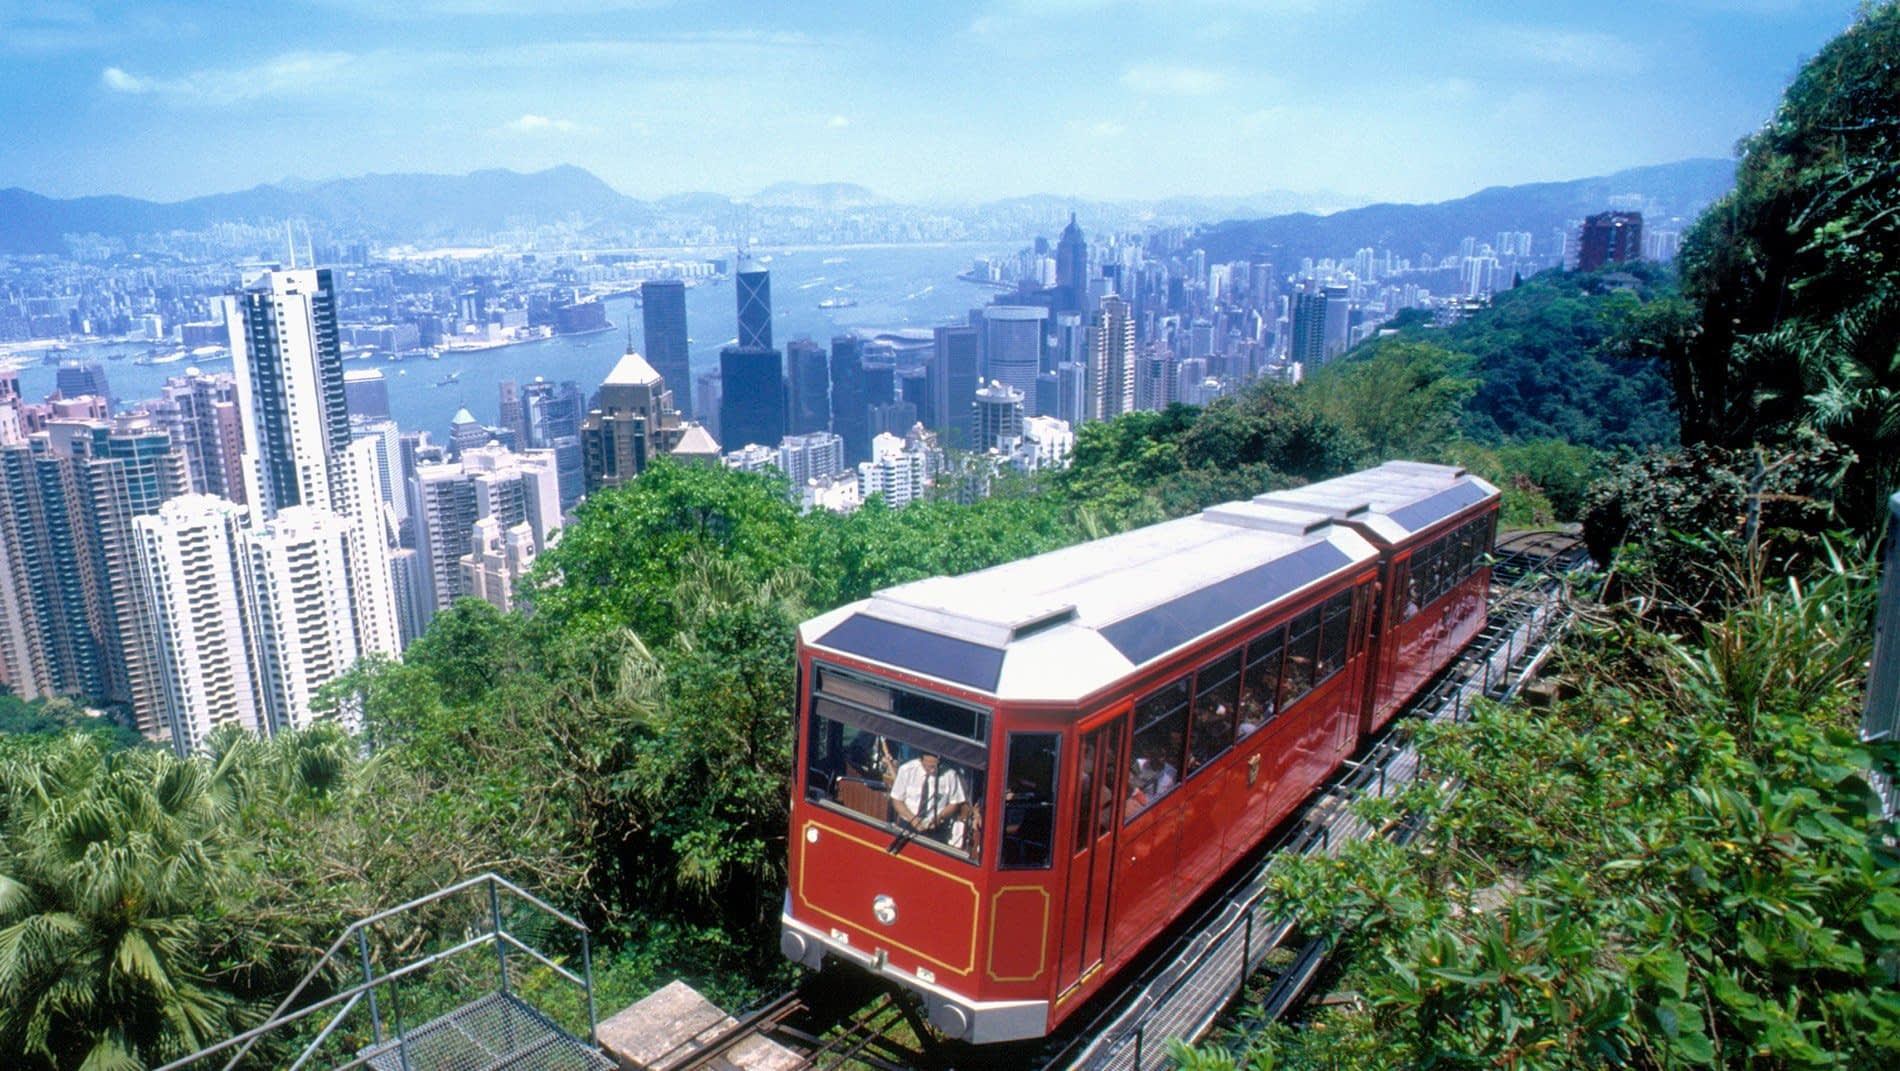 Victoria Peak~Since 1888 the Peak Tram has been carrying people from Central to the Peak to enjoy the cooler air and panoramic view over the downtown and harbor. From 2019 - 2020, it is enjoying a multi-million dollar renovation to double its capacity and improve facilities.